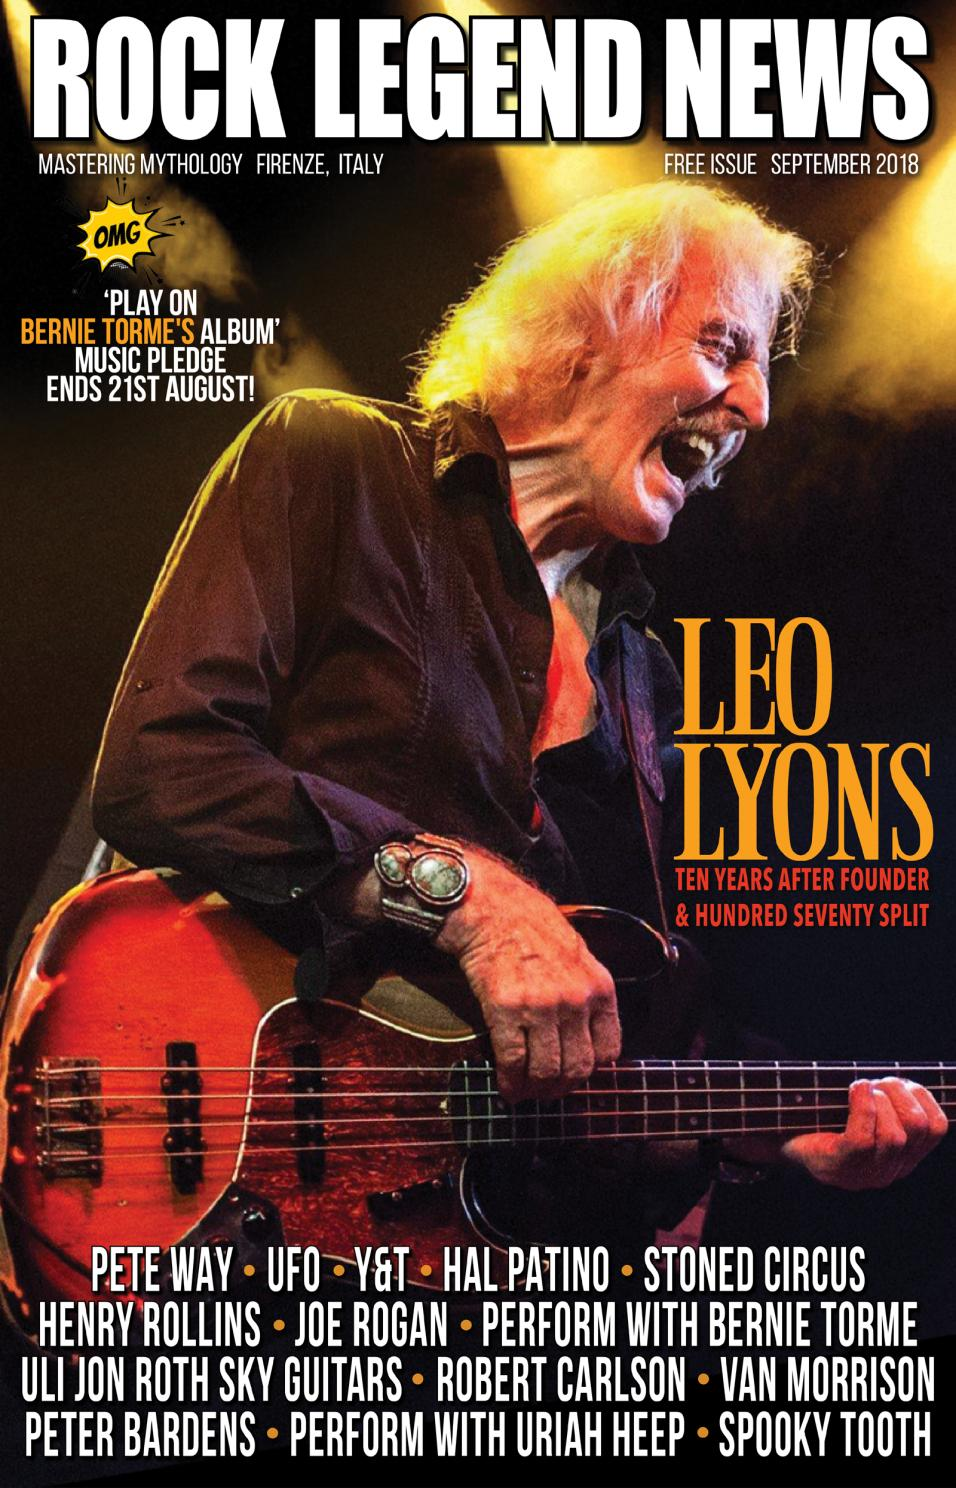 Rock Legend News September 2018 Issue Featuring Bass Legend